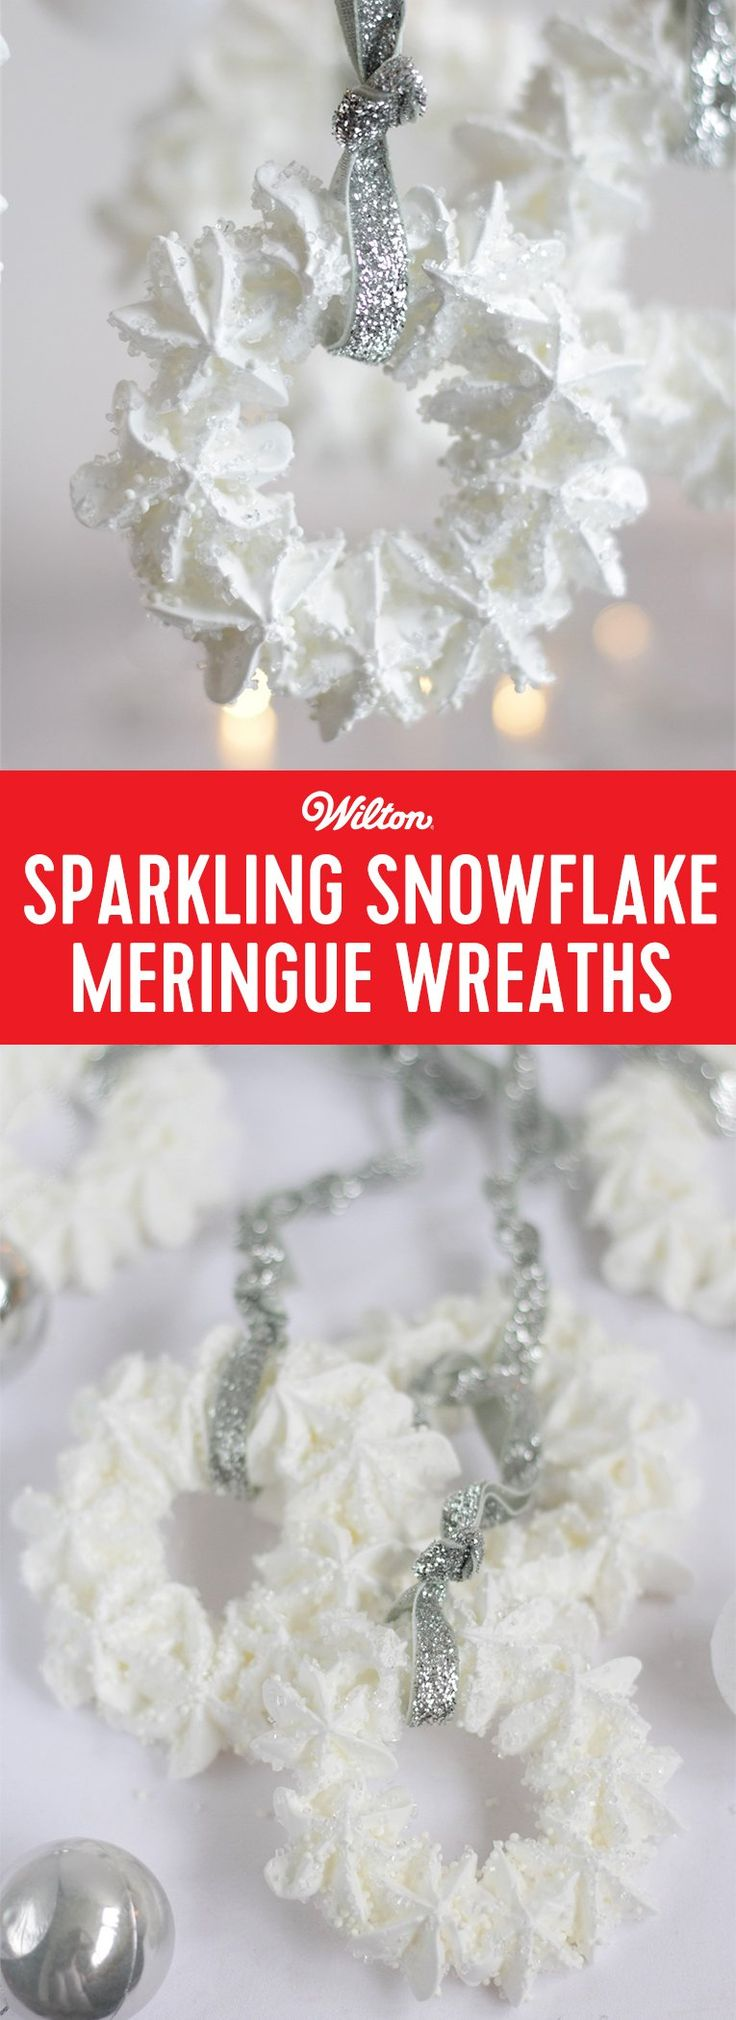 Sparkling Snowflake Meringue Wreaths - The sparkling sugars on these meringues will look just like snowflakes, bringing a magical quality to your baking! Use to hang on trees or wrap as gifts. Or why not make a large meringue wreath and fill with frosted fruit! #snowflake #meringue #christmas #holidaybaking #wiltoncakes